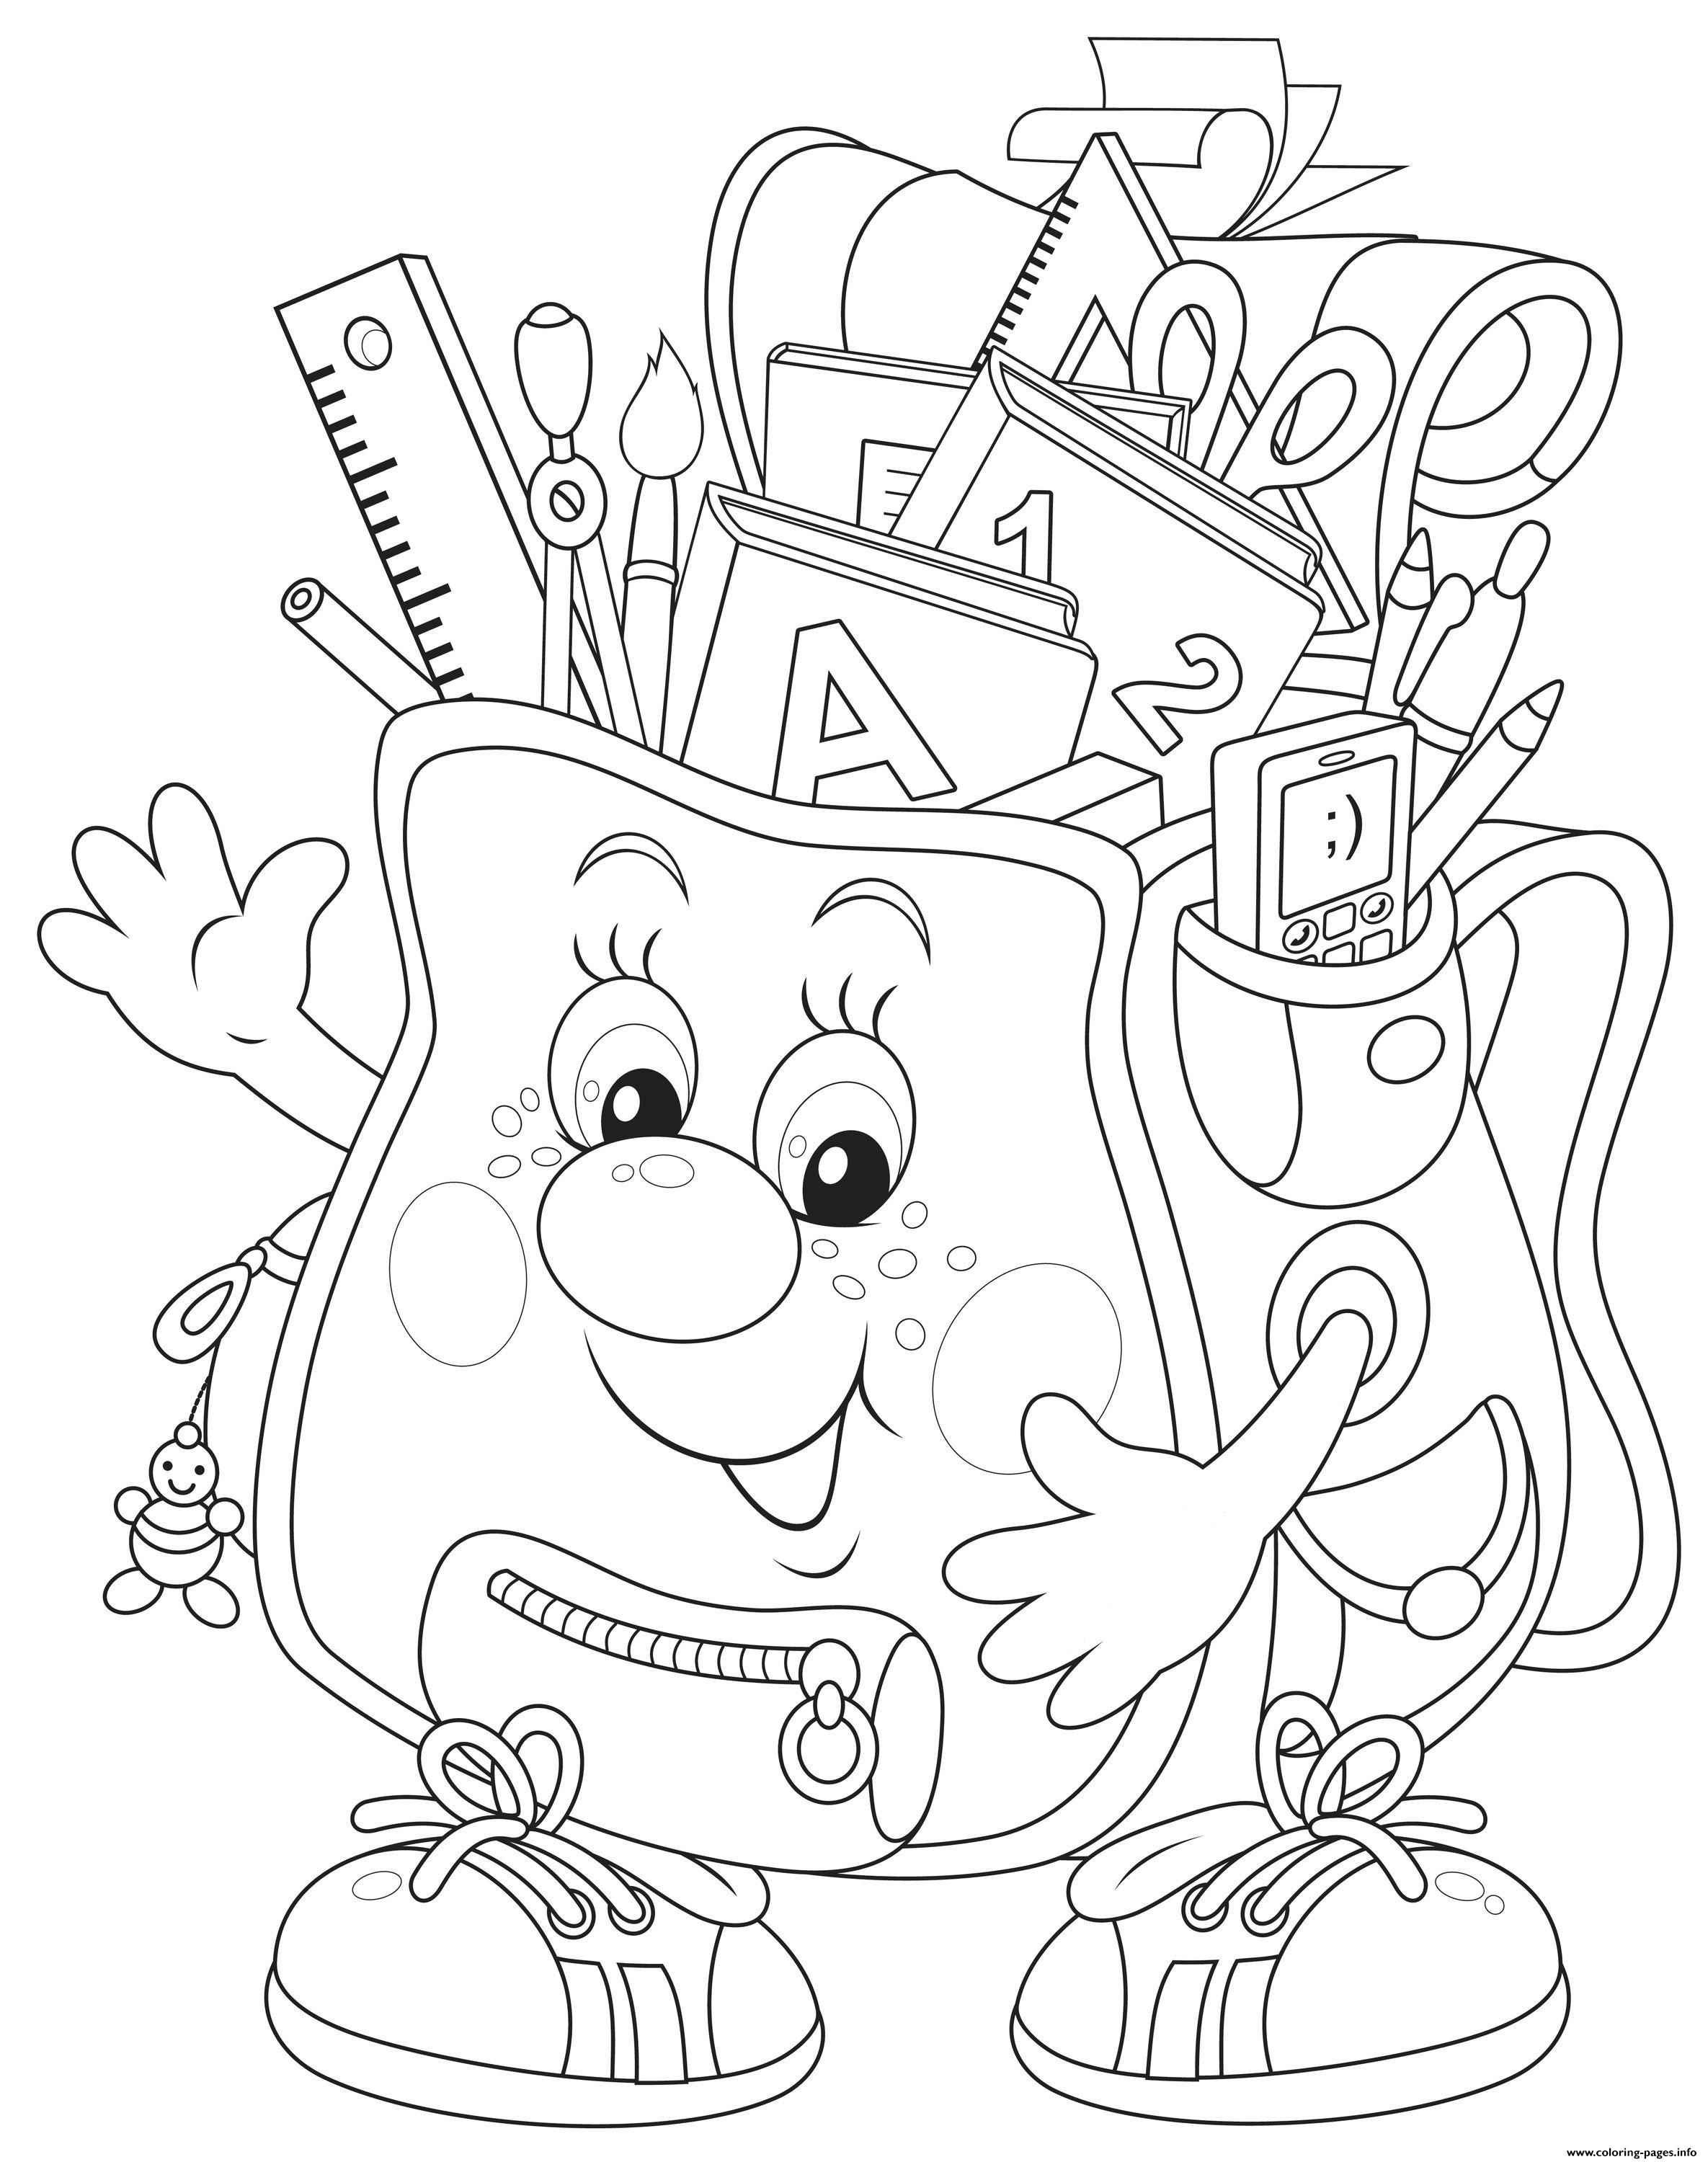 School Bus Coloring Page Coloring Pages Printable Magic School Bus Coloring Sheets Back To